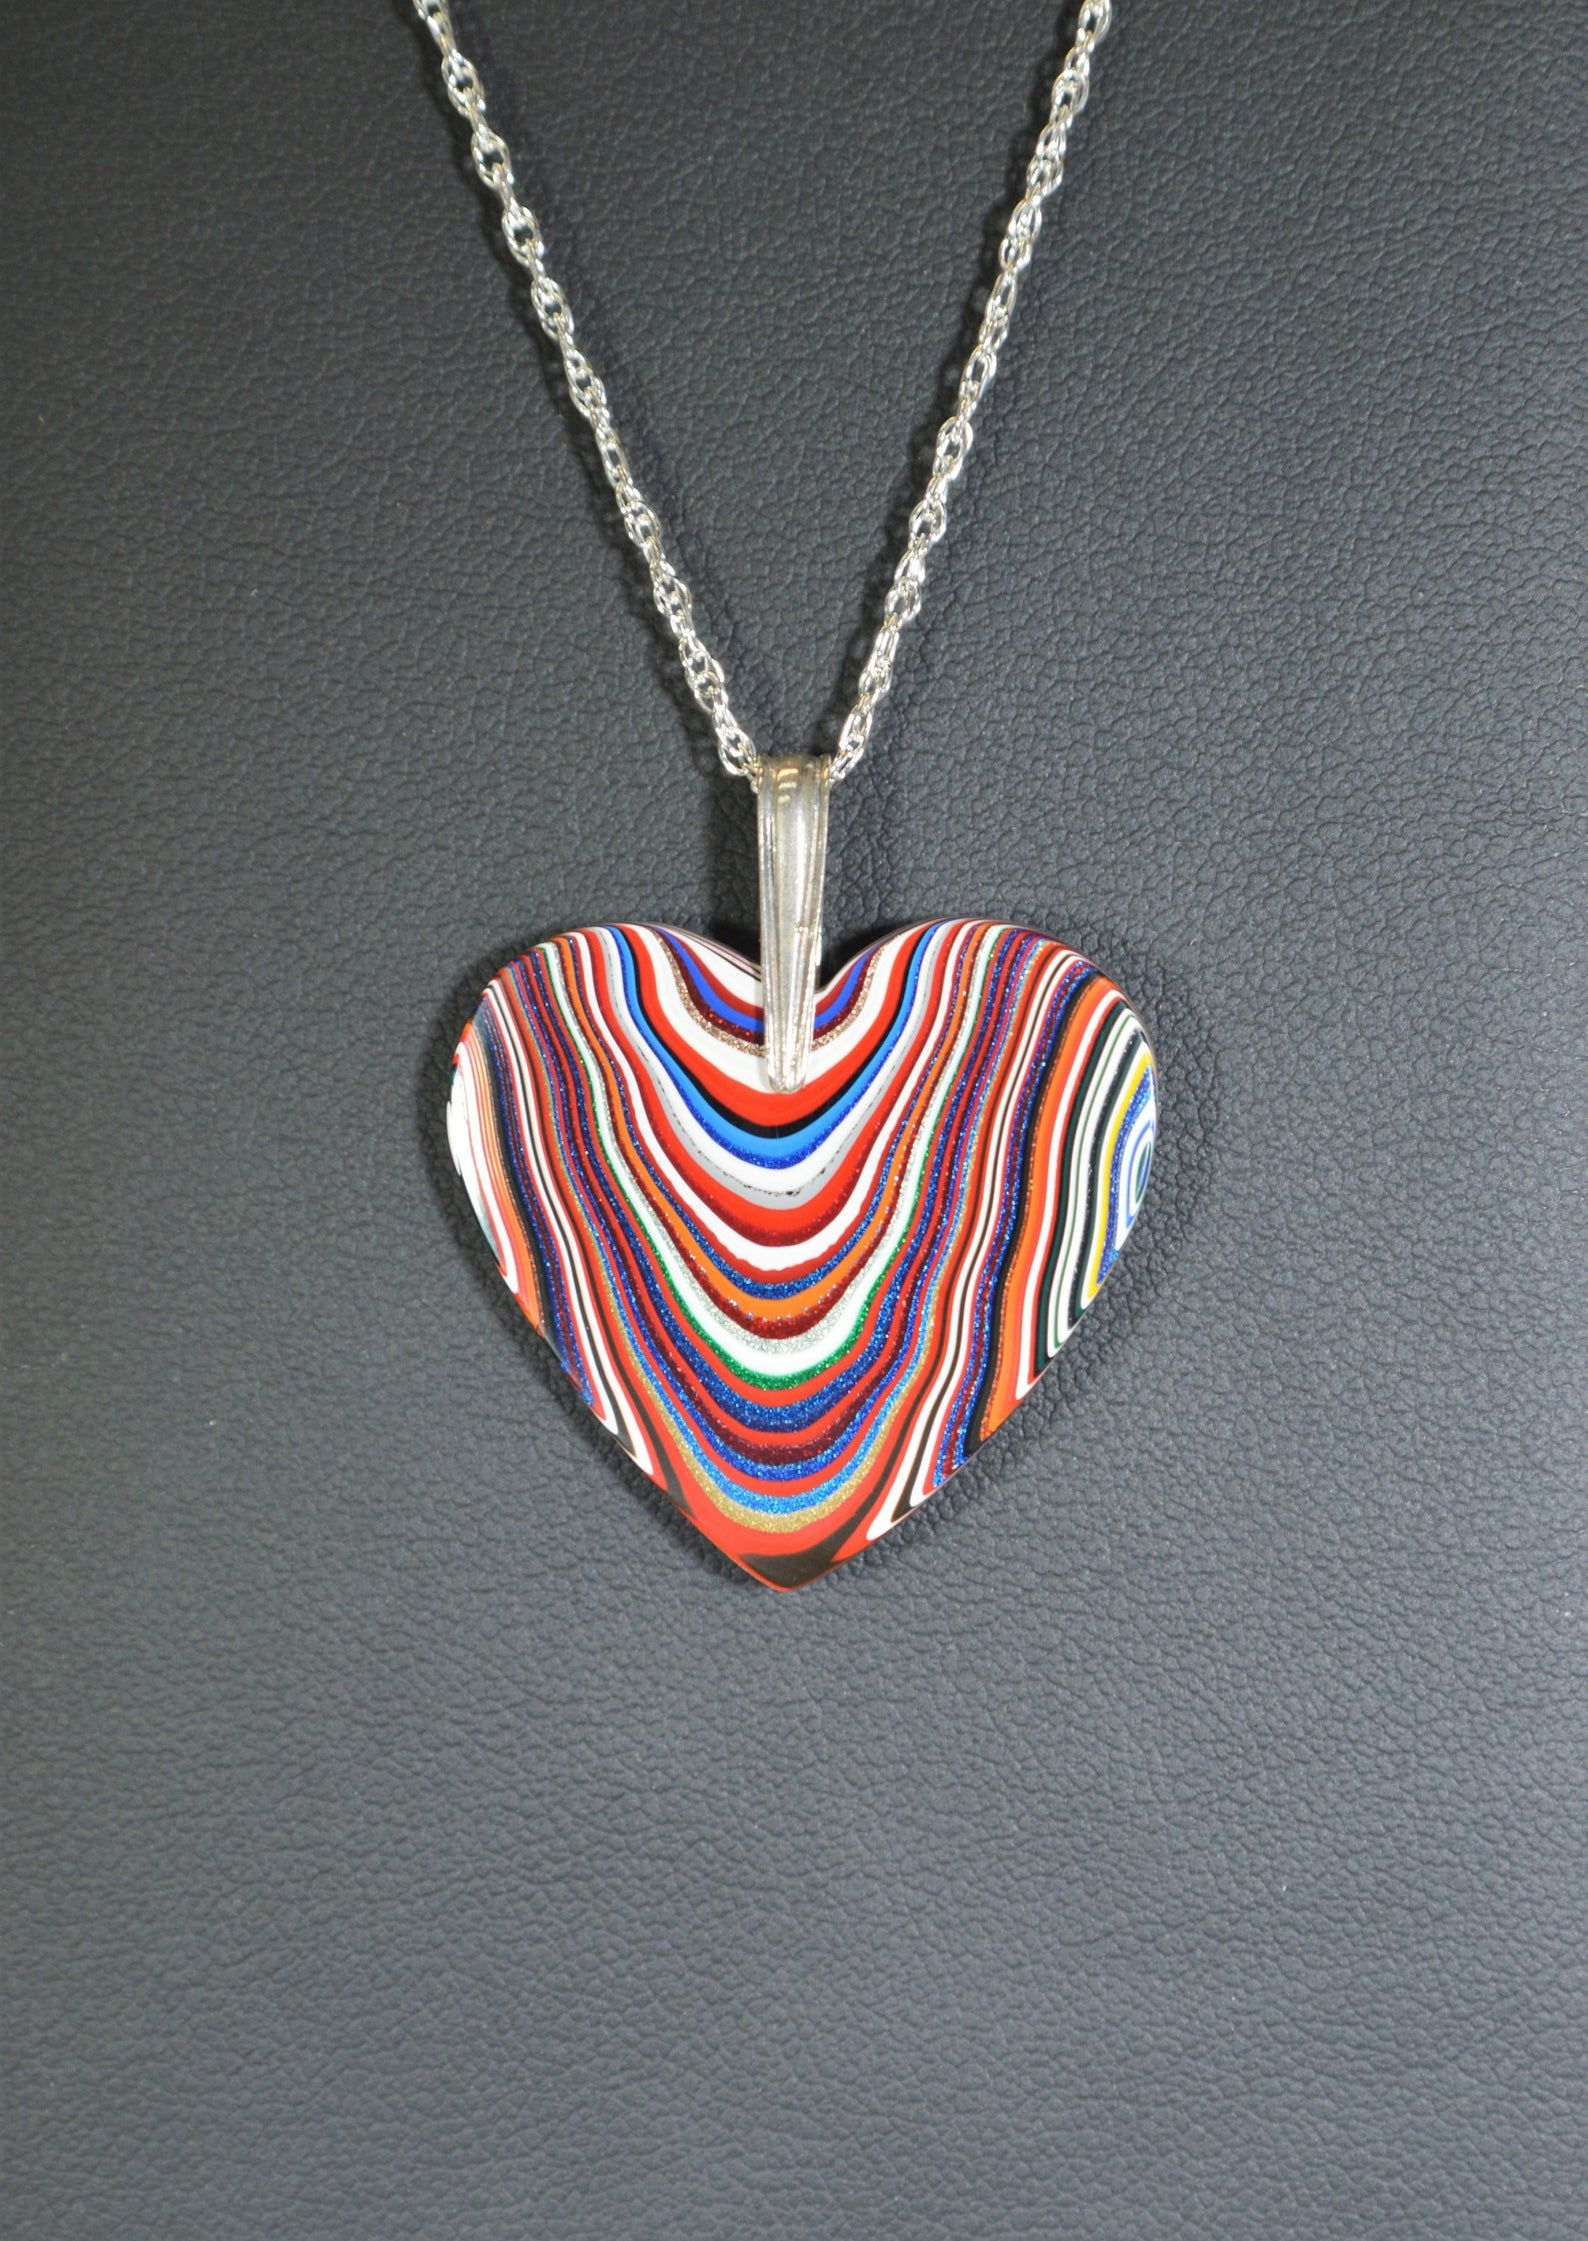 Upcycled Car Paint Motor Agate Fordite Cabochon Sterling Silver Necklace Made in Michigan Corvette Fordite Diamond-Shape Pendant